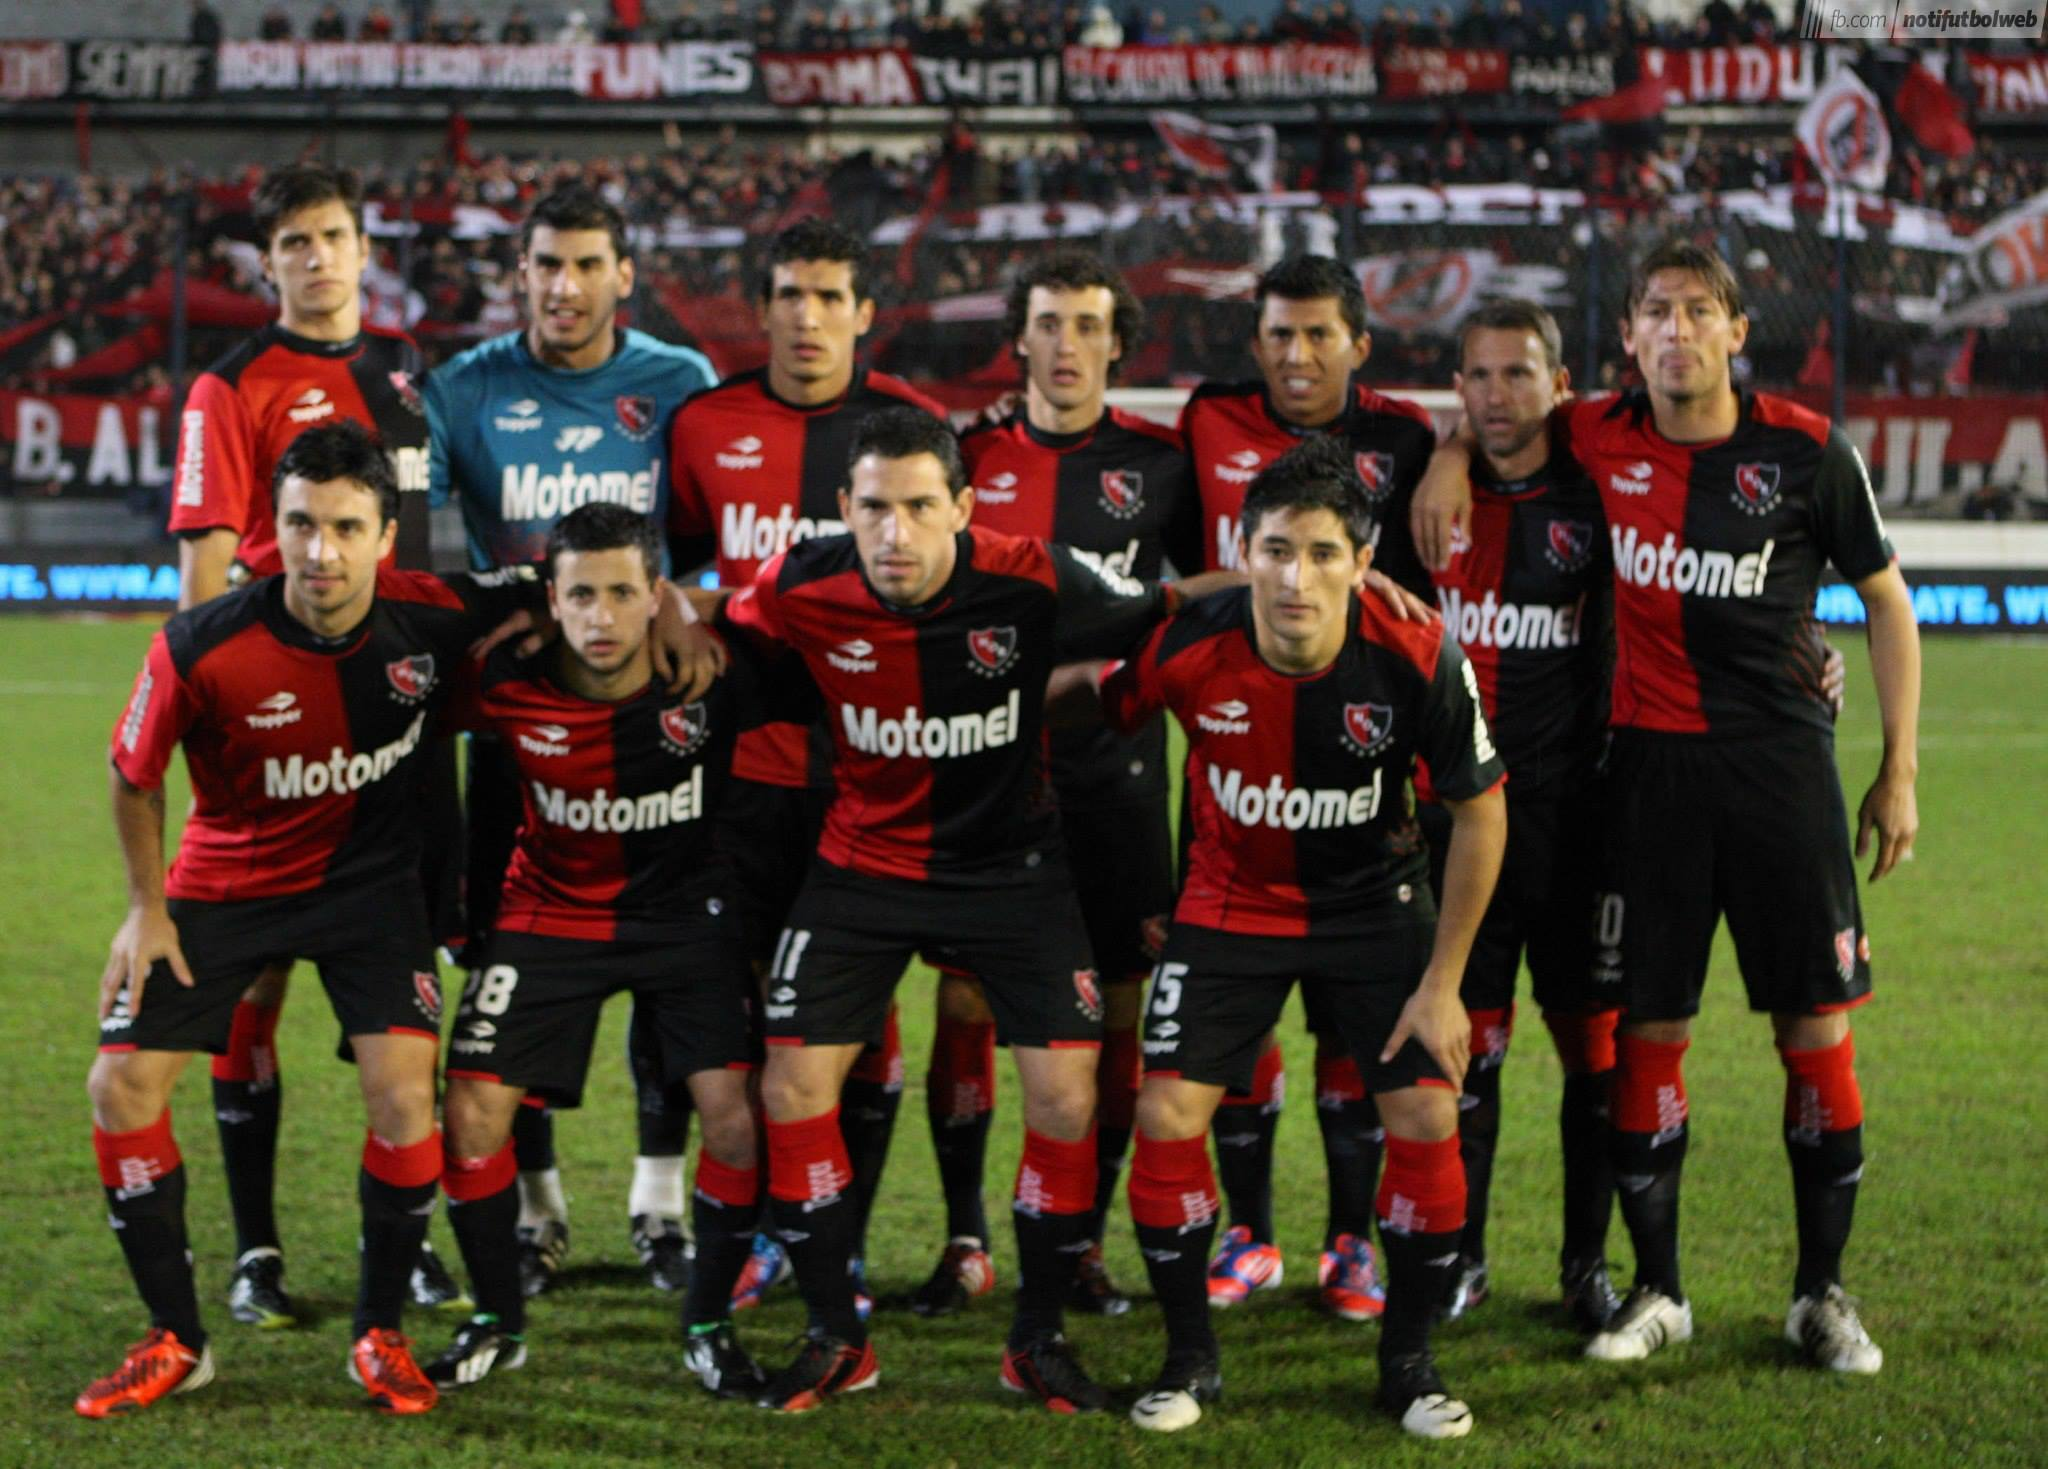 Newells Picture: Newells Campeon Torneo Final 2013